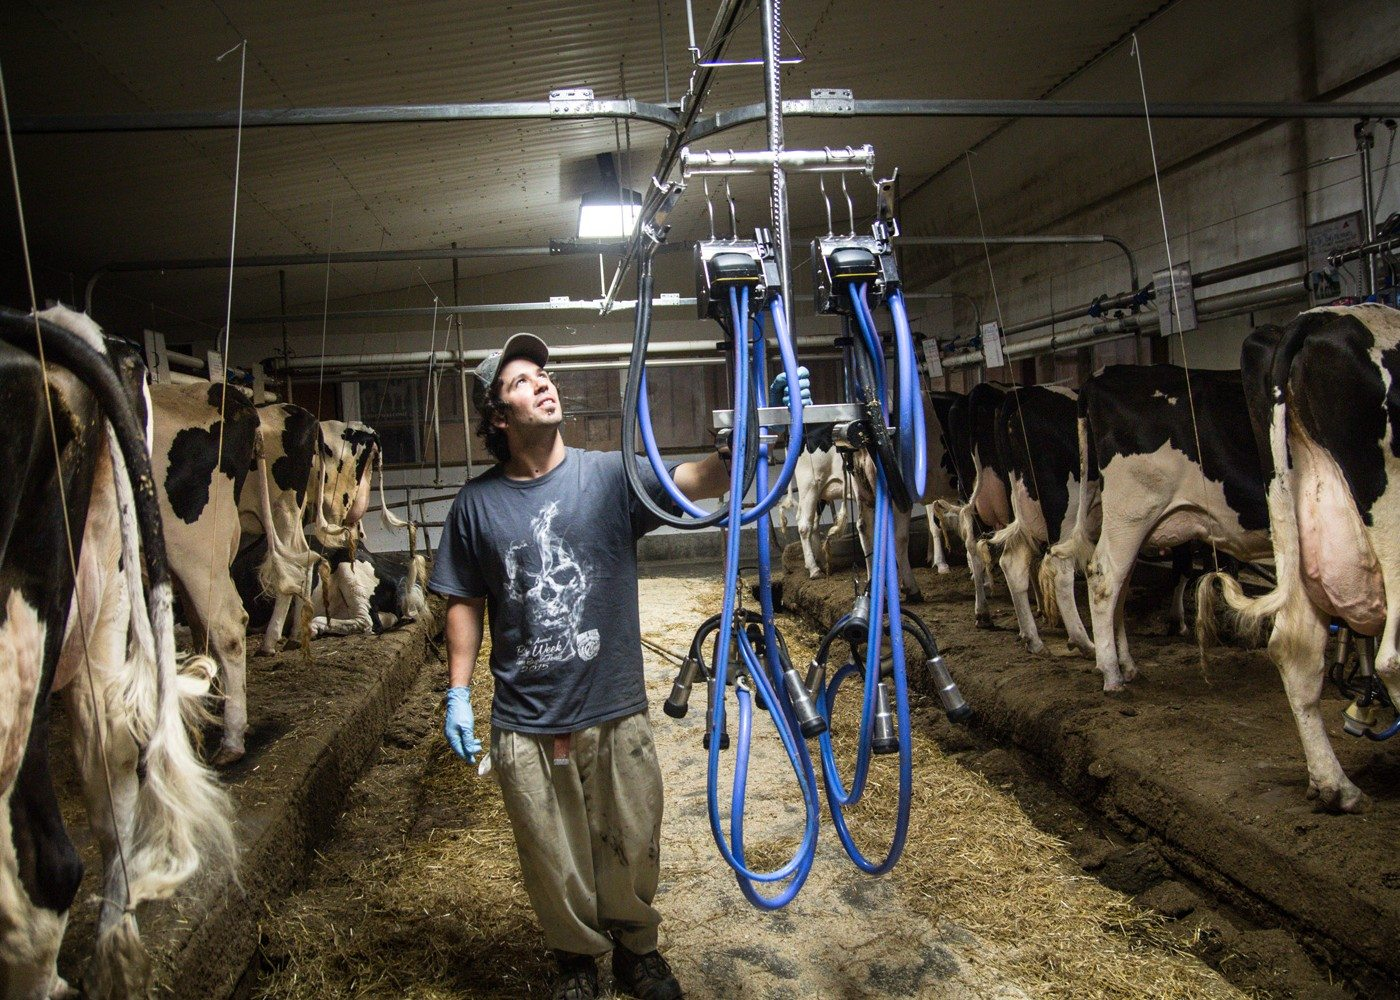 Eric Patenaude, 33, co-owner and manager of La Ferme Gillette. Photo: David Trattles